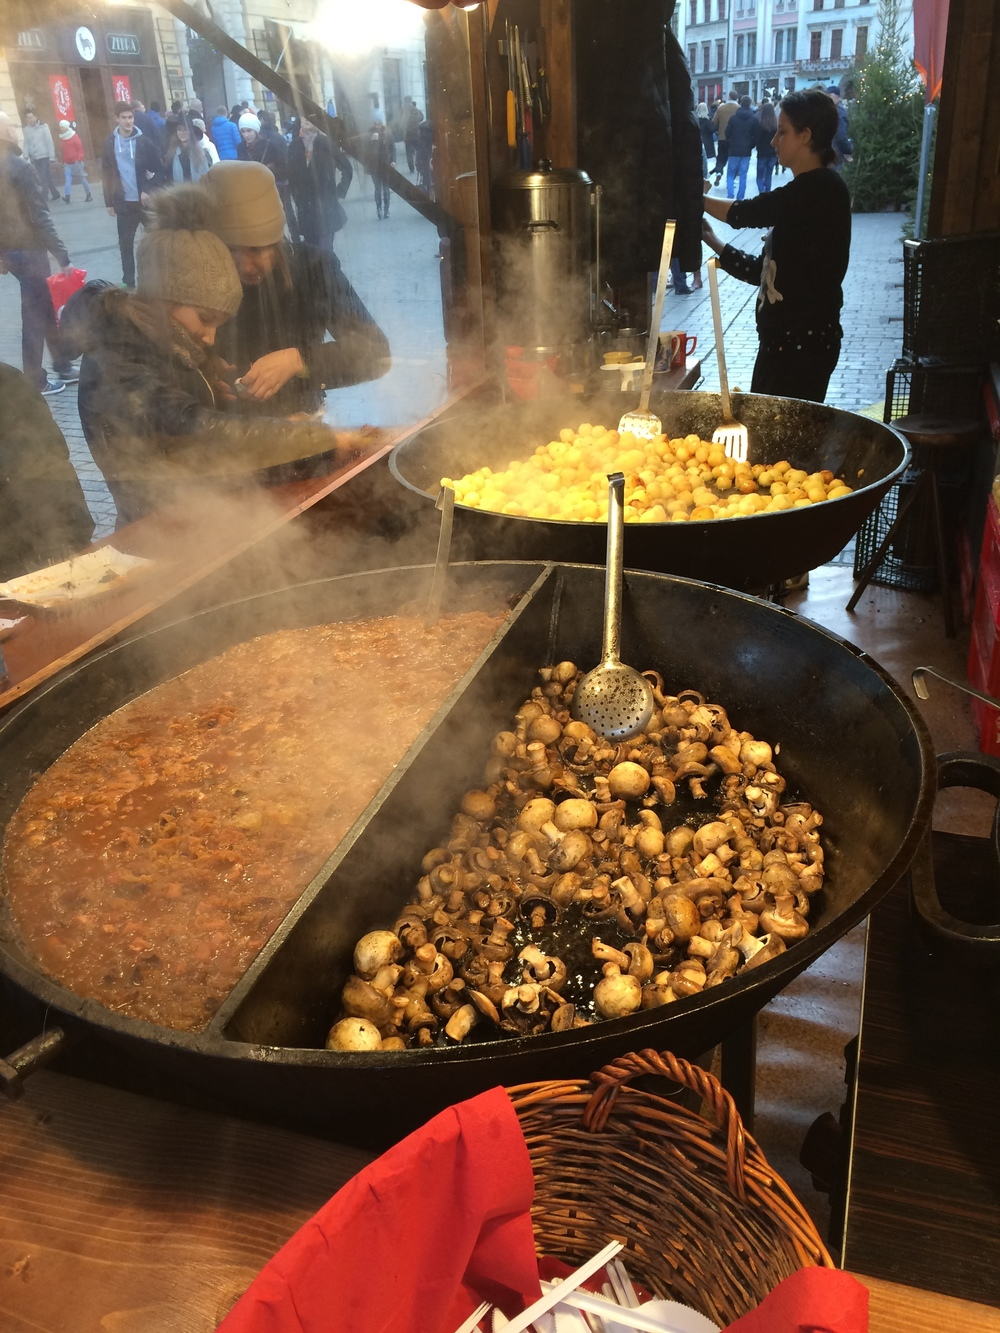 Krakow Christmas markets: Sauteed potatoes, mushrooms, and sauerkraut soup